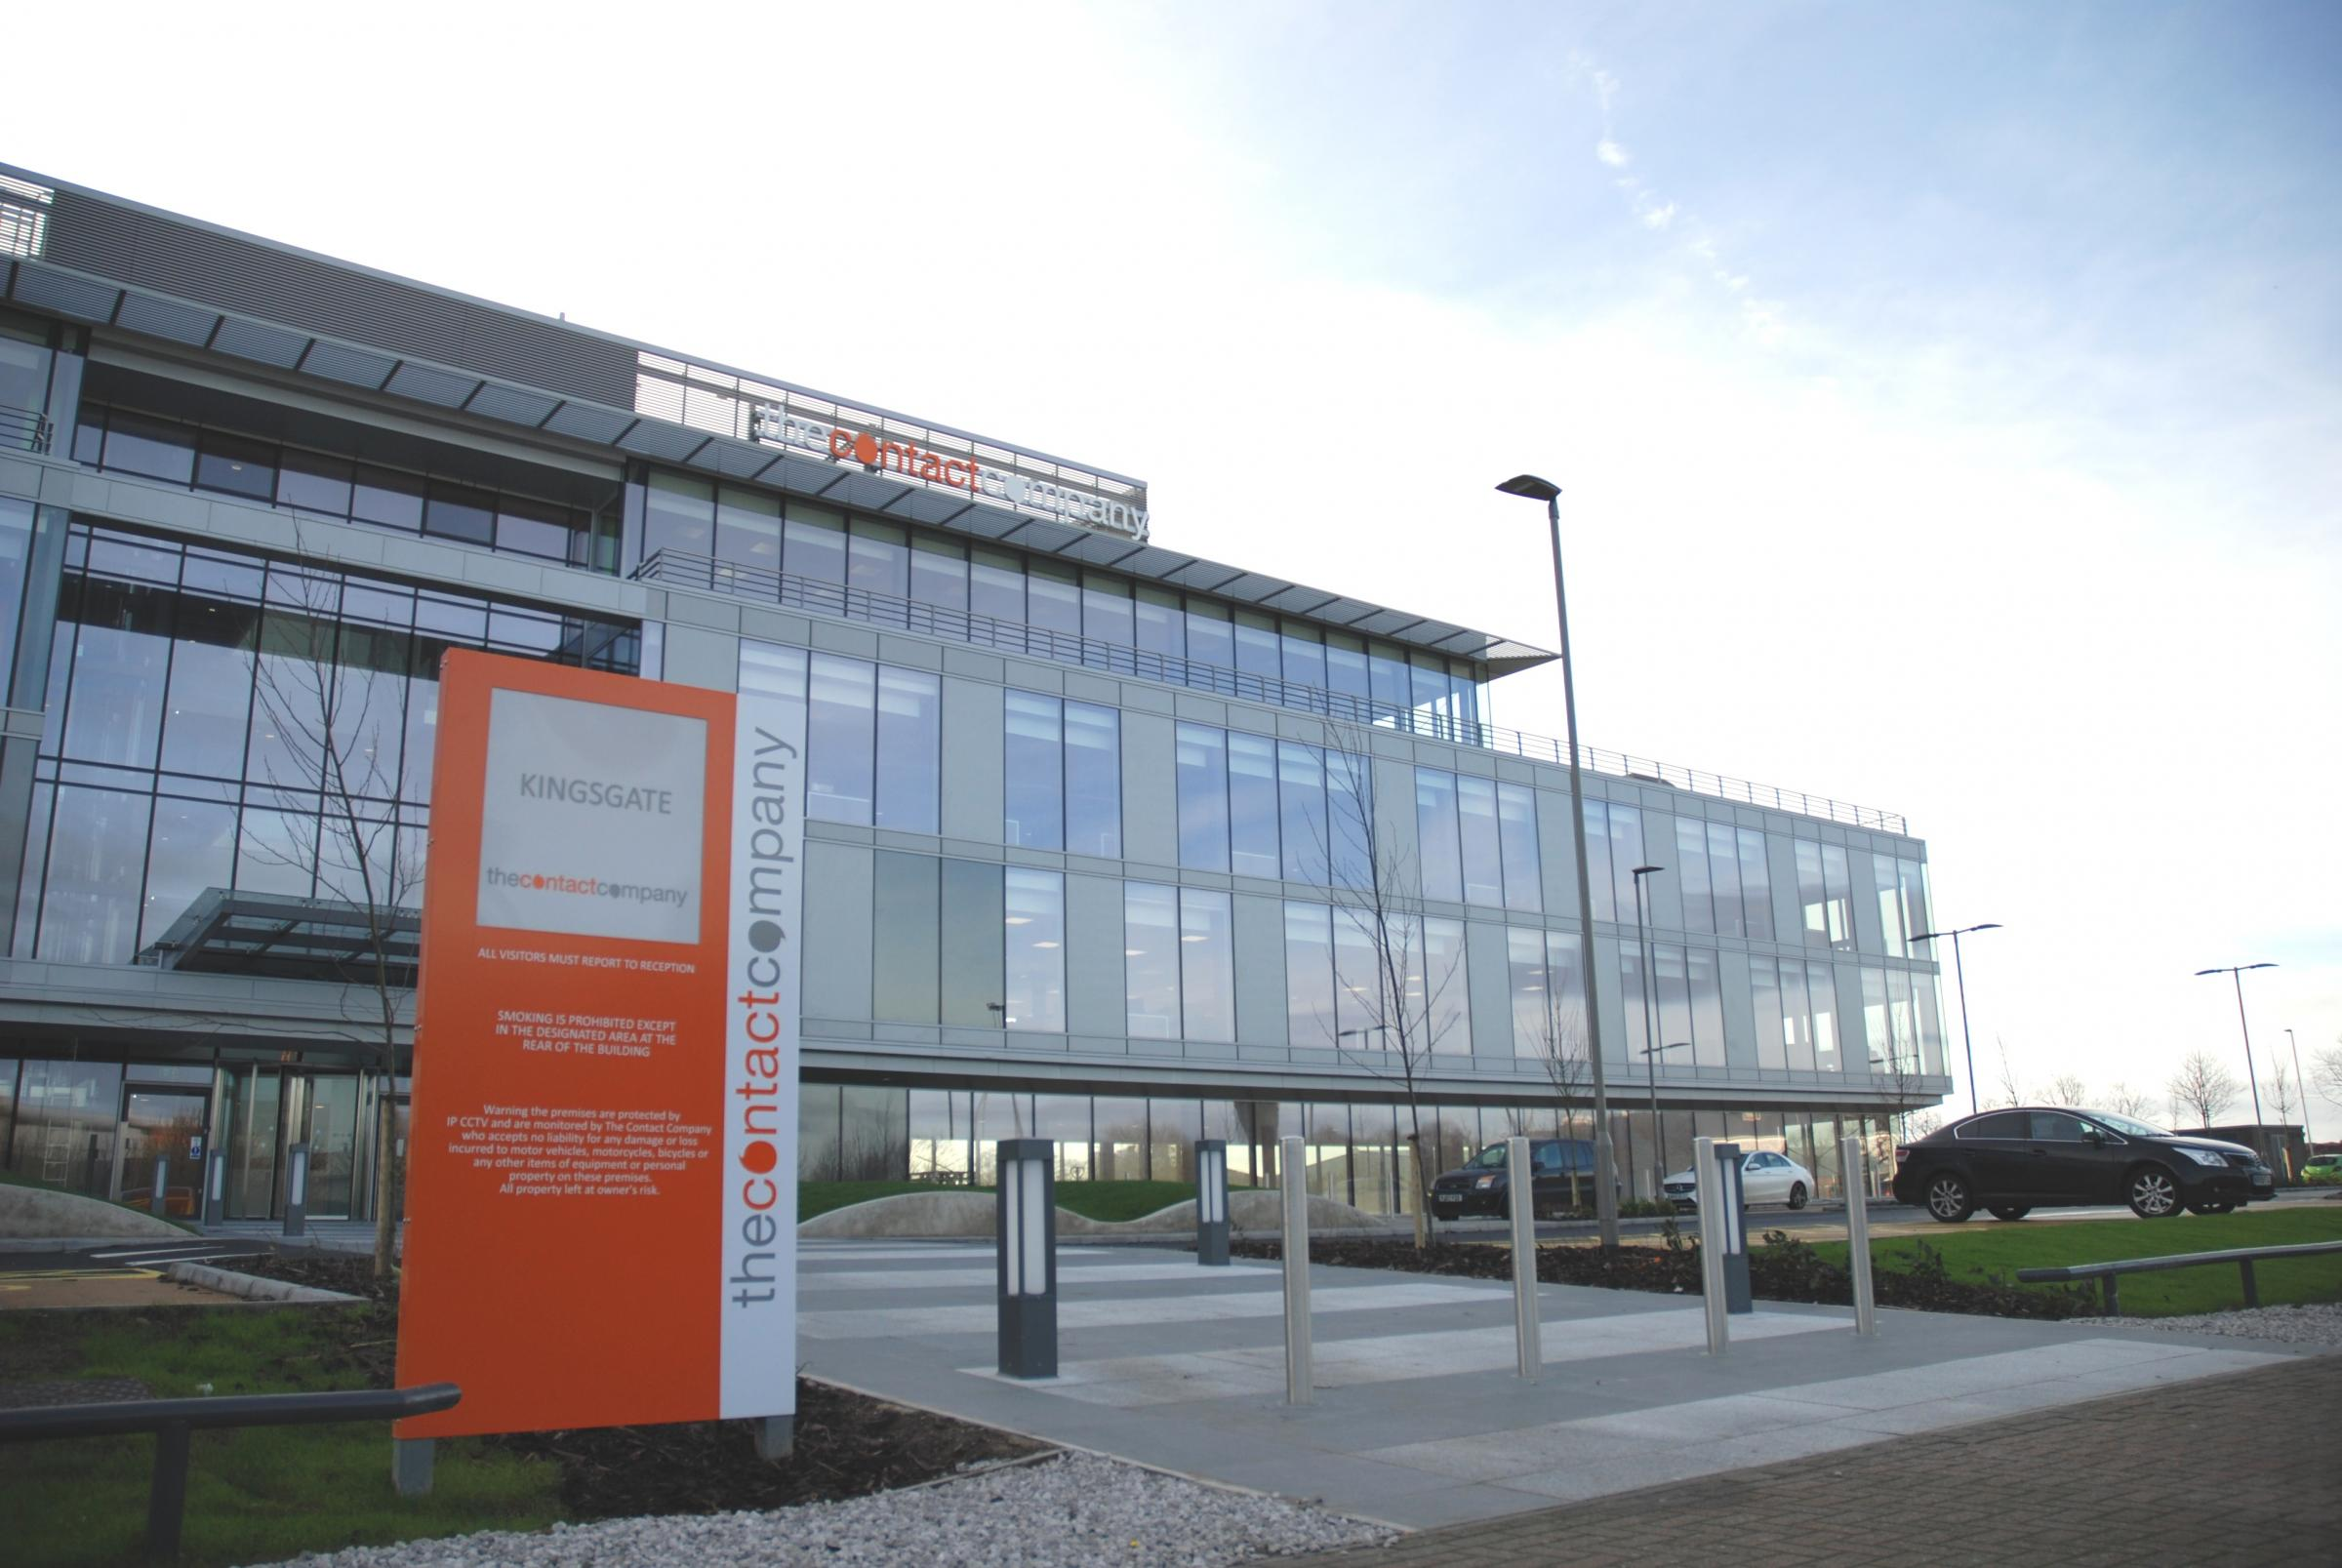 The £11m facility occupies a prominent spot in Birkenhead in Wirral Waters Enterprise Zone